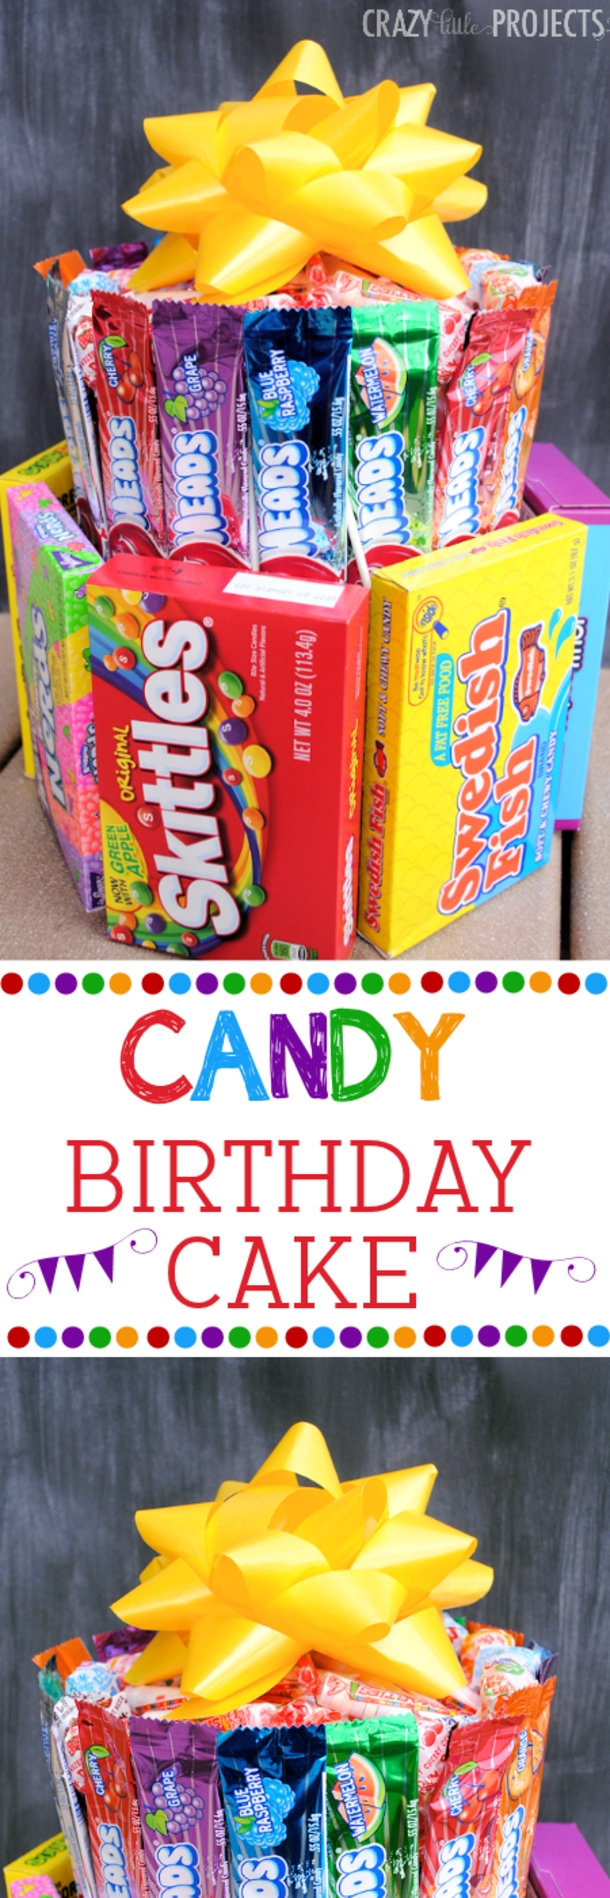 10 Pretty Sweet 16 Birthday Gift Ideas 10 diy gifts for a girls sweet 16 sweet 16 sweet 16 gifts and gift 6